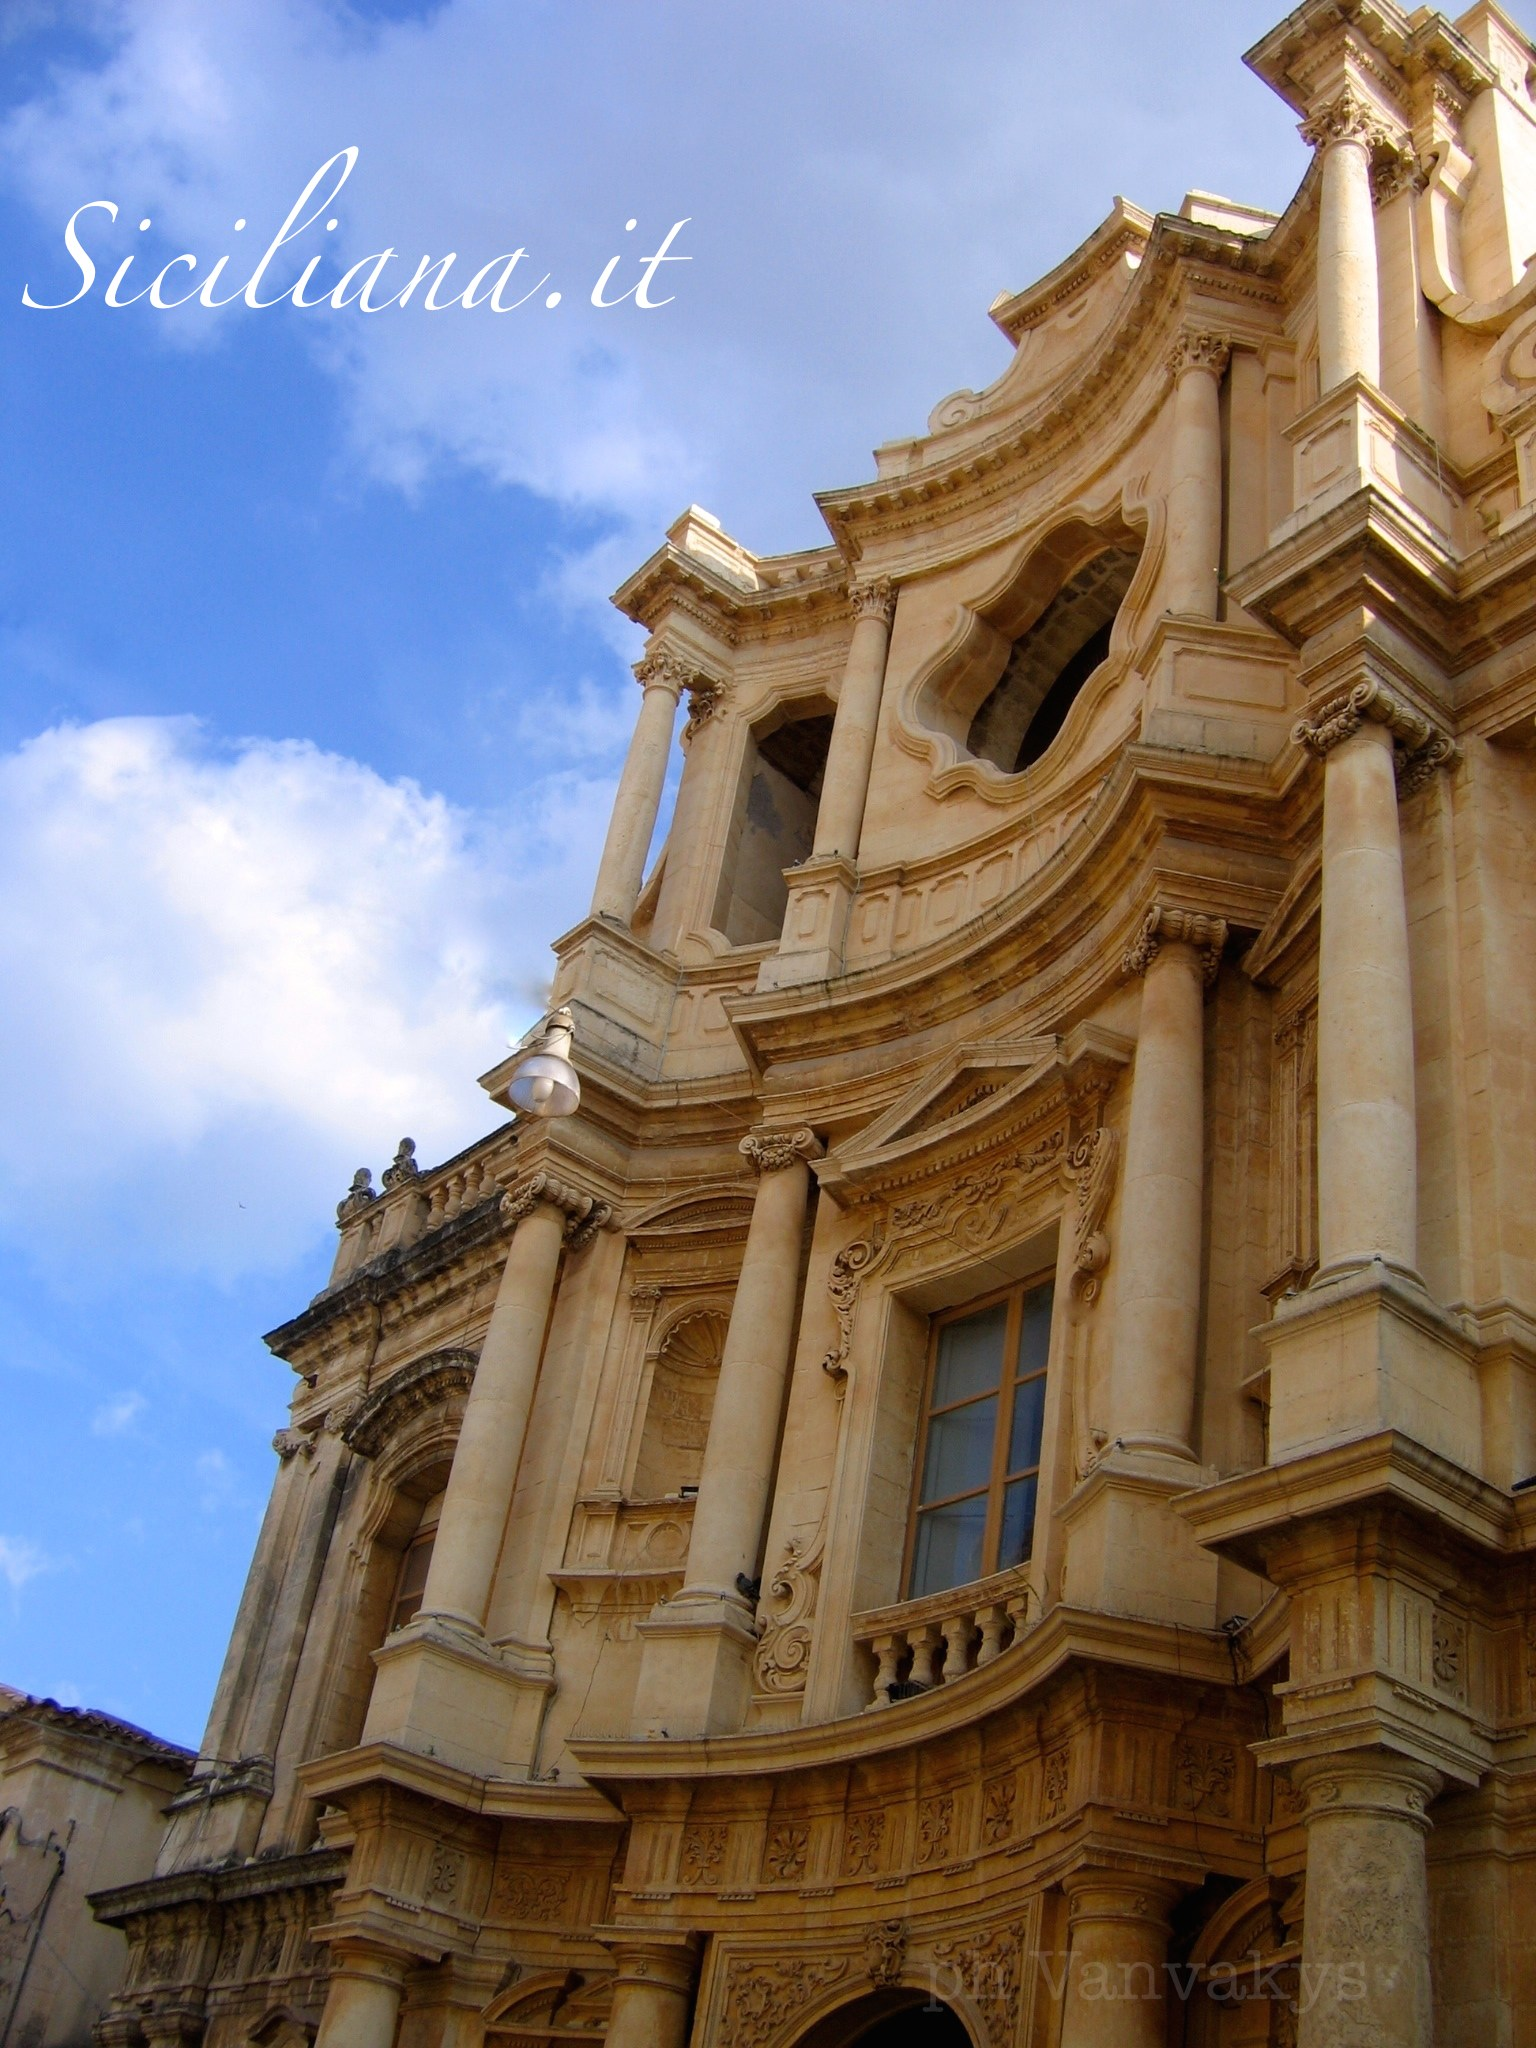 Noto by Vnavakys copy